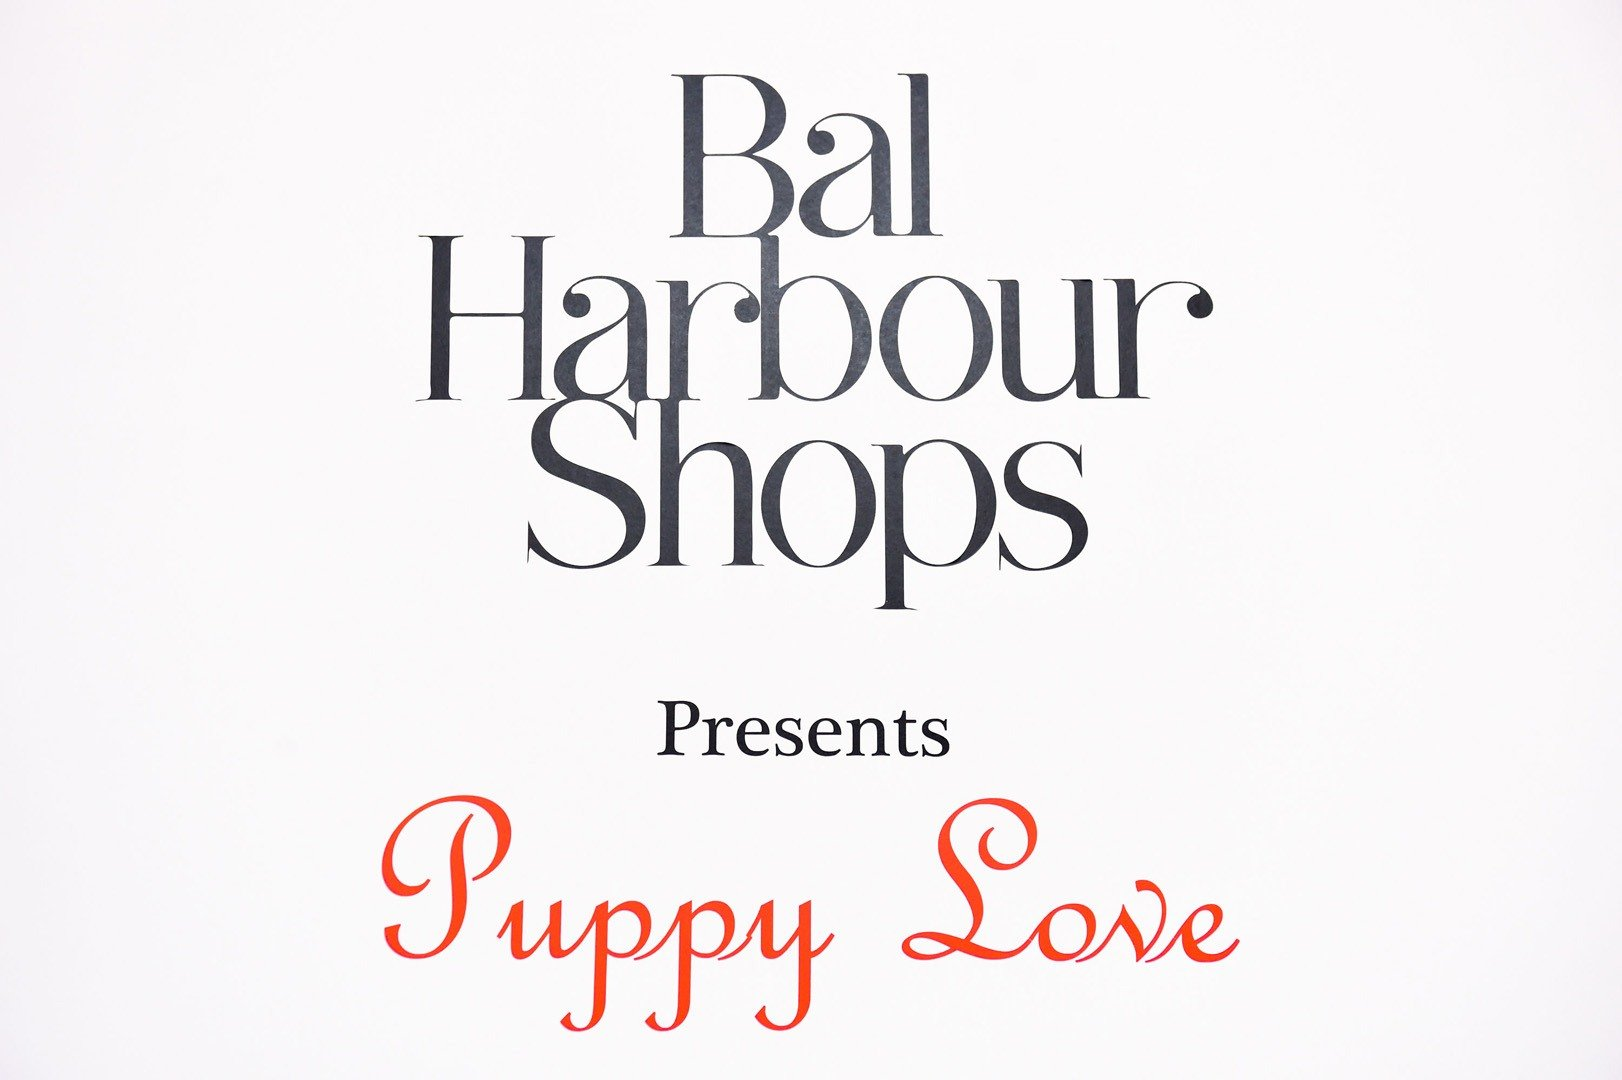 Bal Harbour Shops partnered with Walk in Style for the Animals to host Puppy Love on Wednesday, February 12th benefiting Big Dog Ranch Rescue